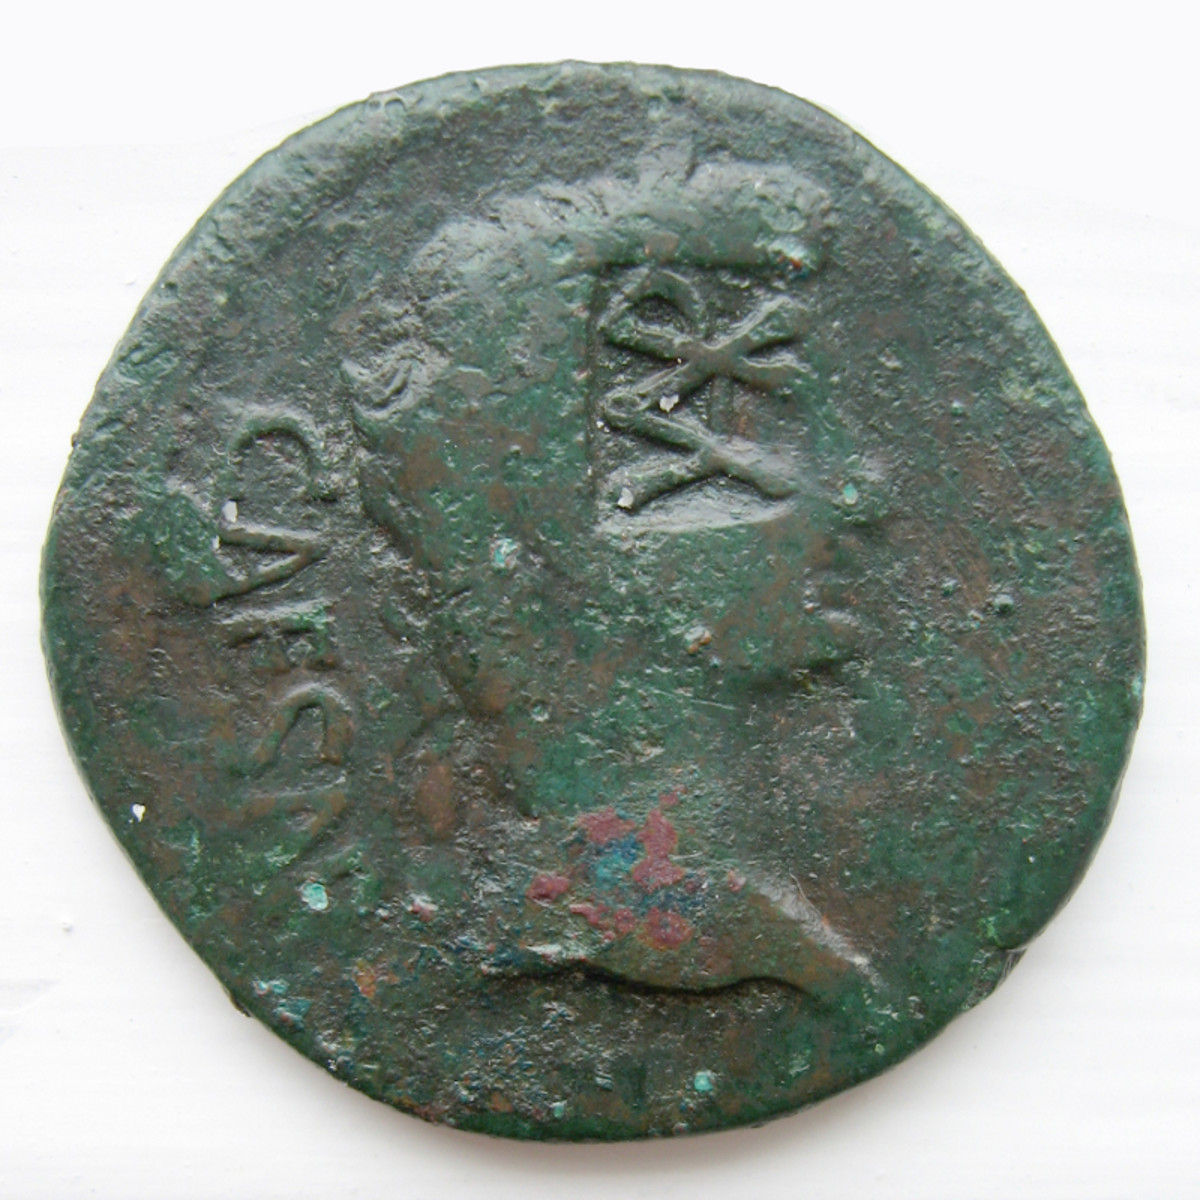 Coin from Lugdunum, a Roman City along the Rhine, bearing the initials VAR, for Varus